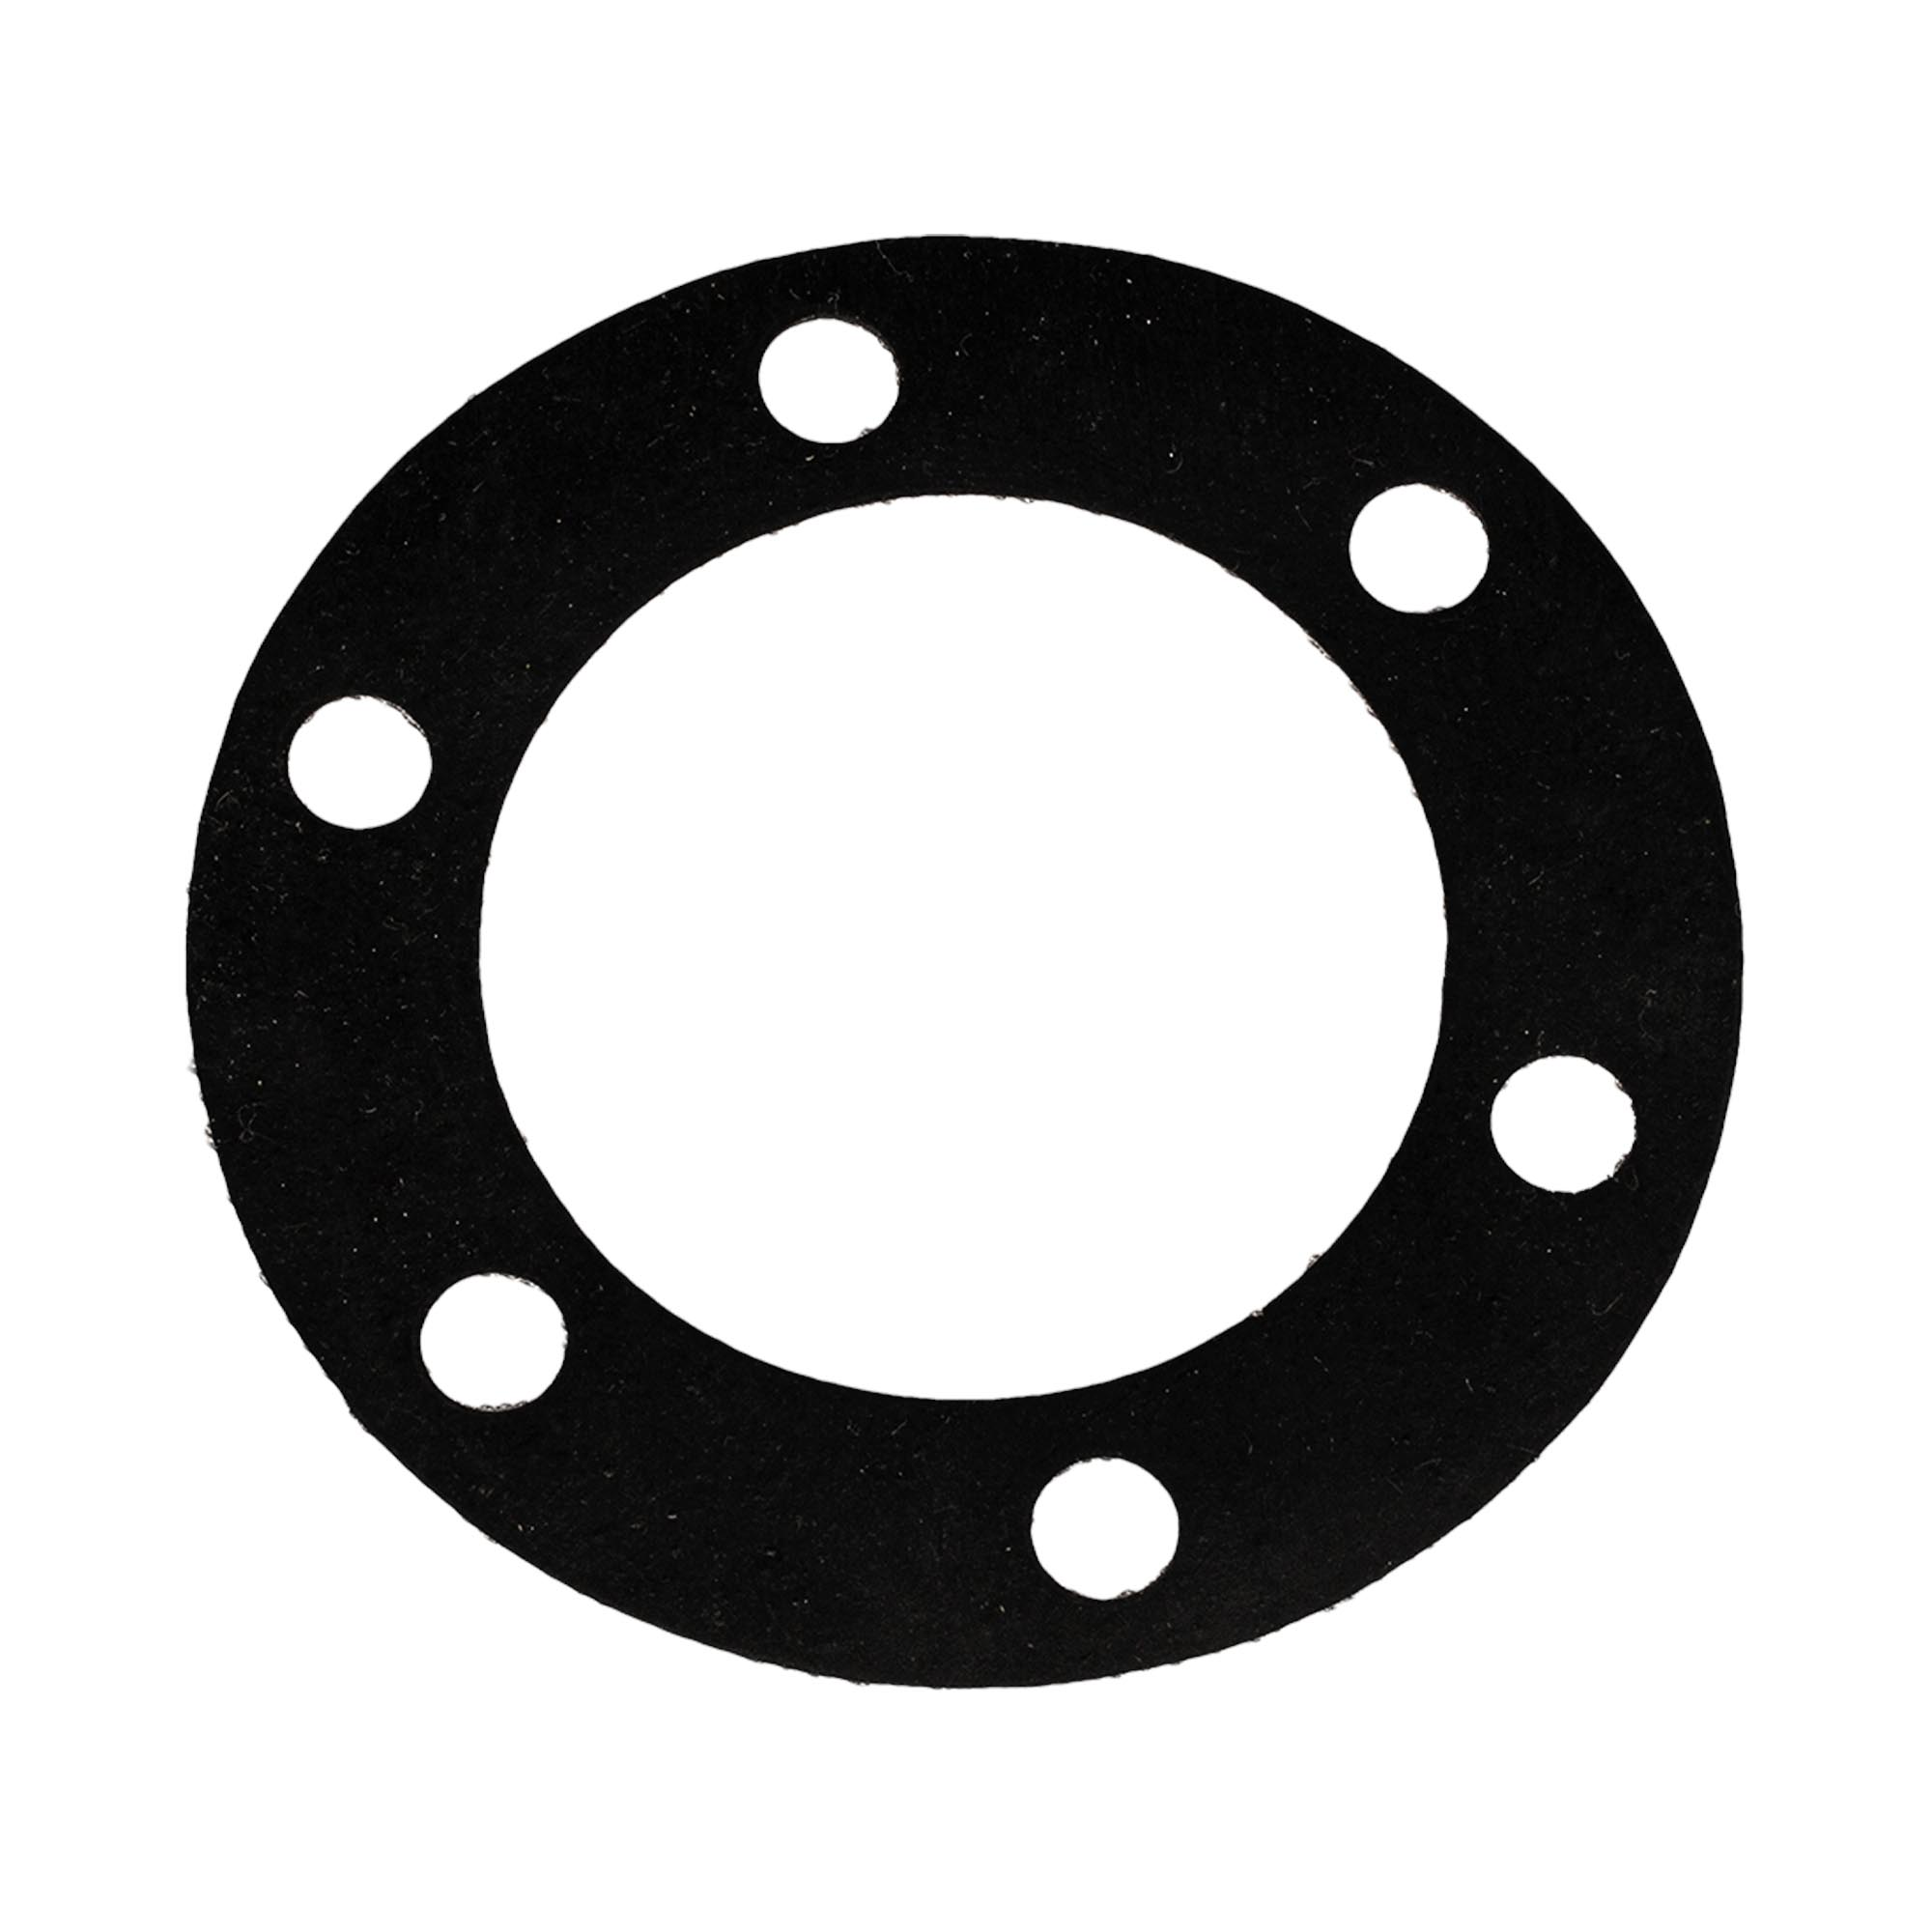 Model 902032 Replacement EasySwitch Wet-Dry Vacuum Unit Gasket